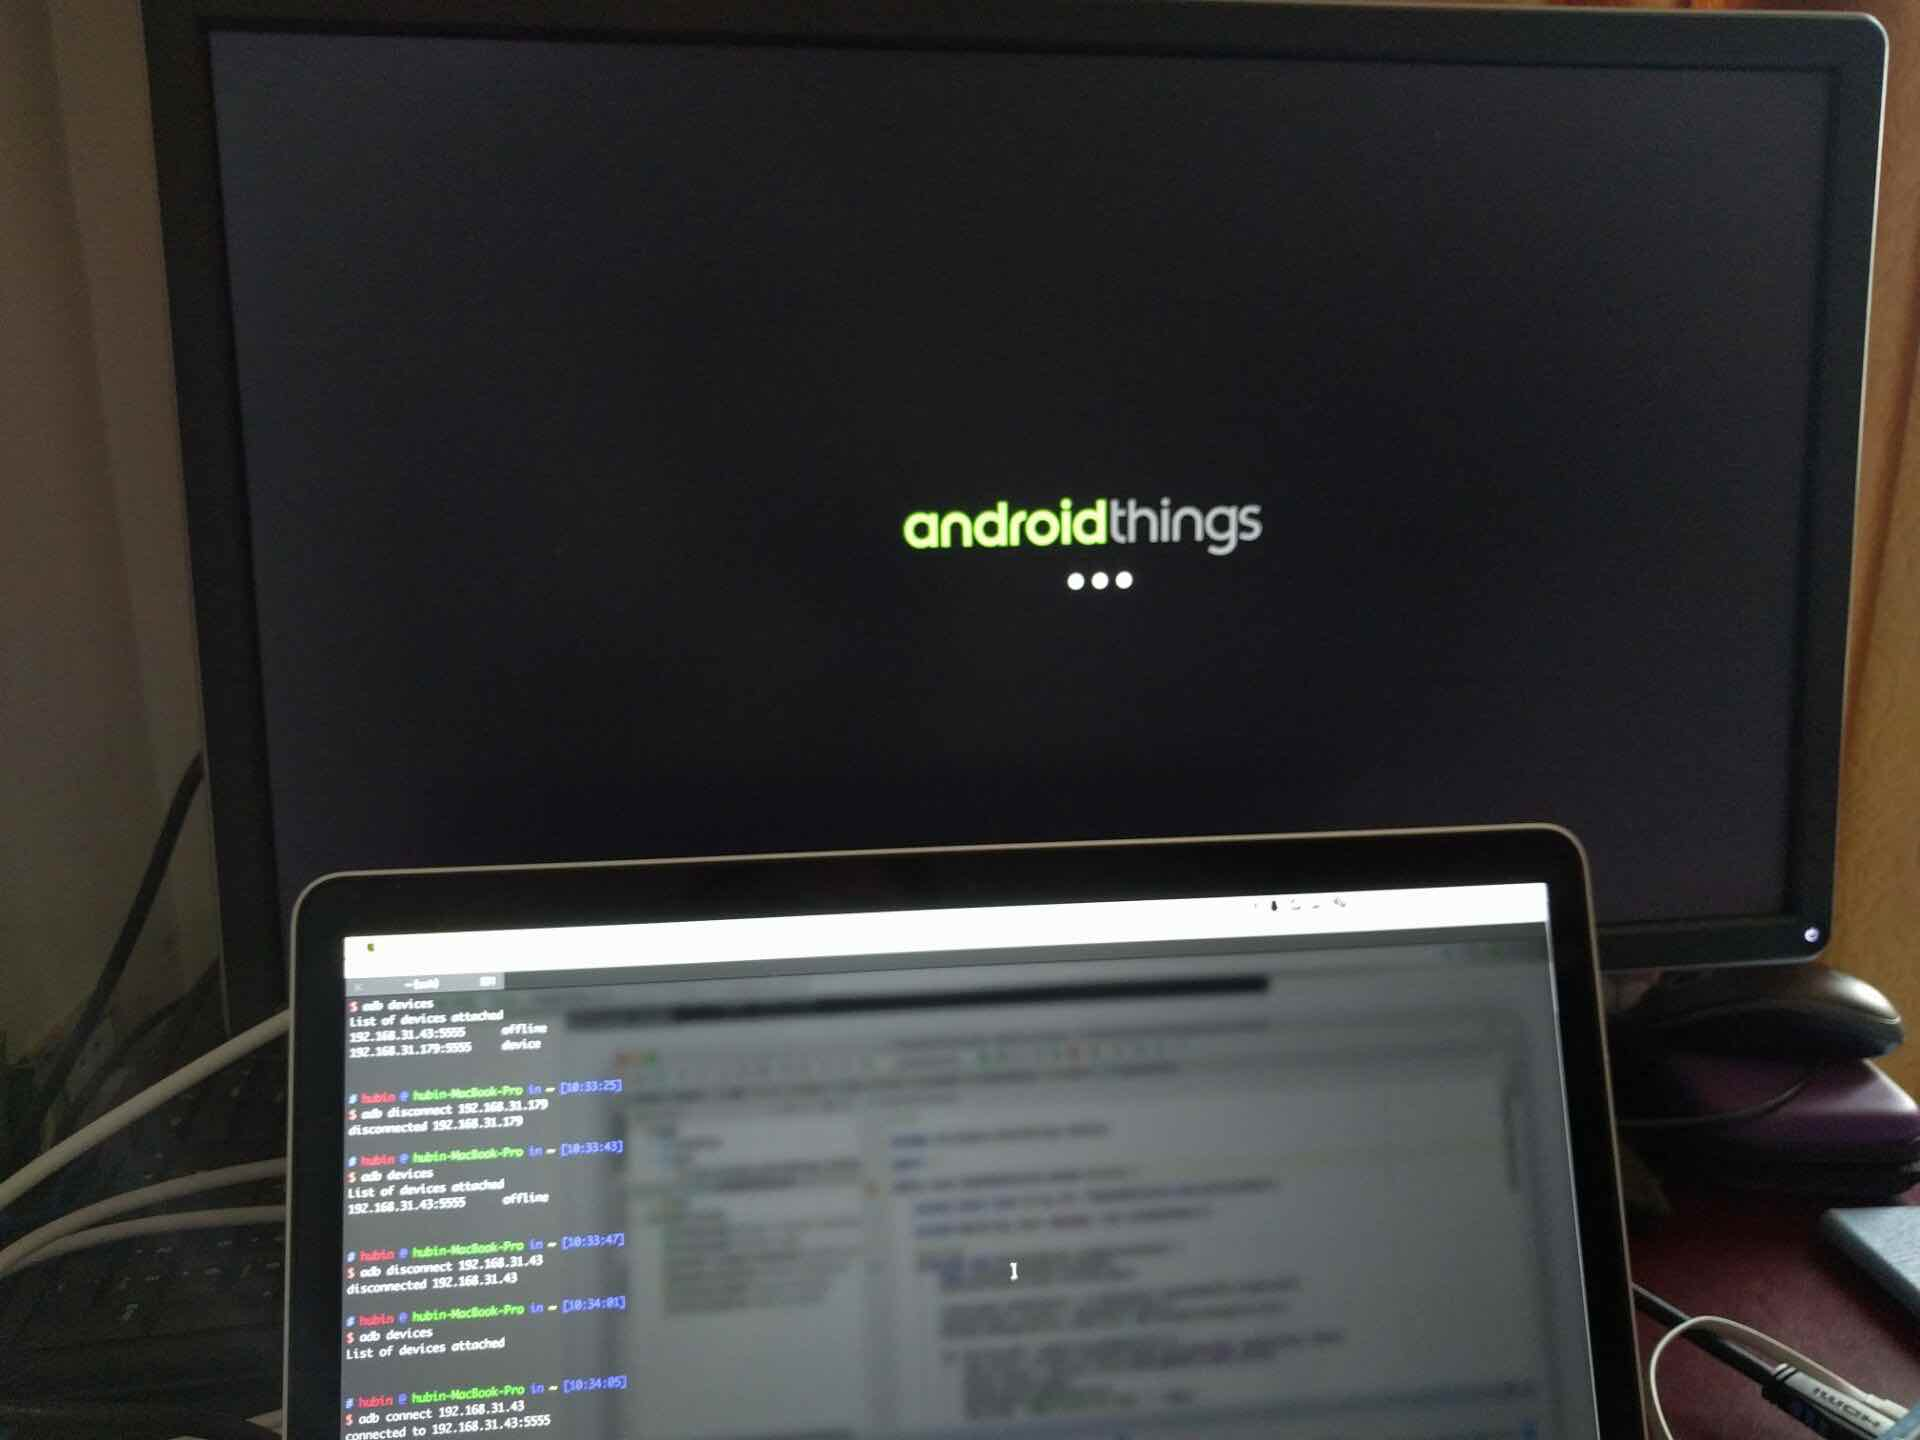 AndroidThings 启动页面